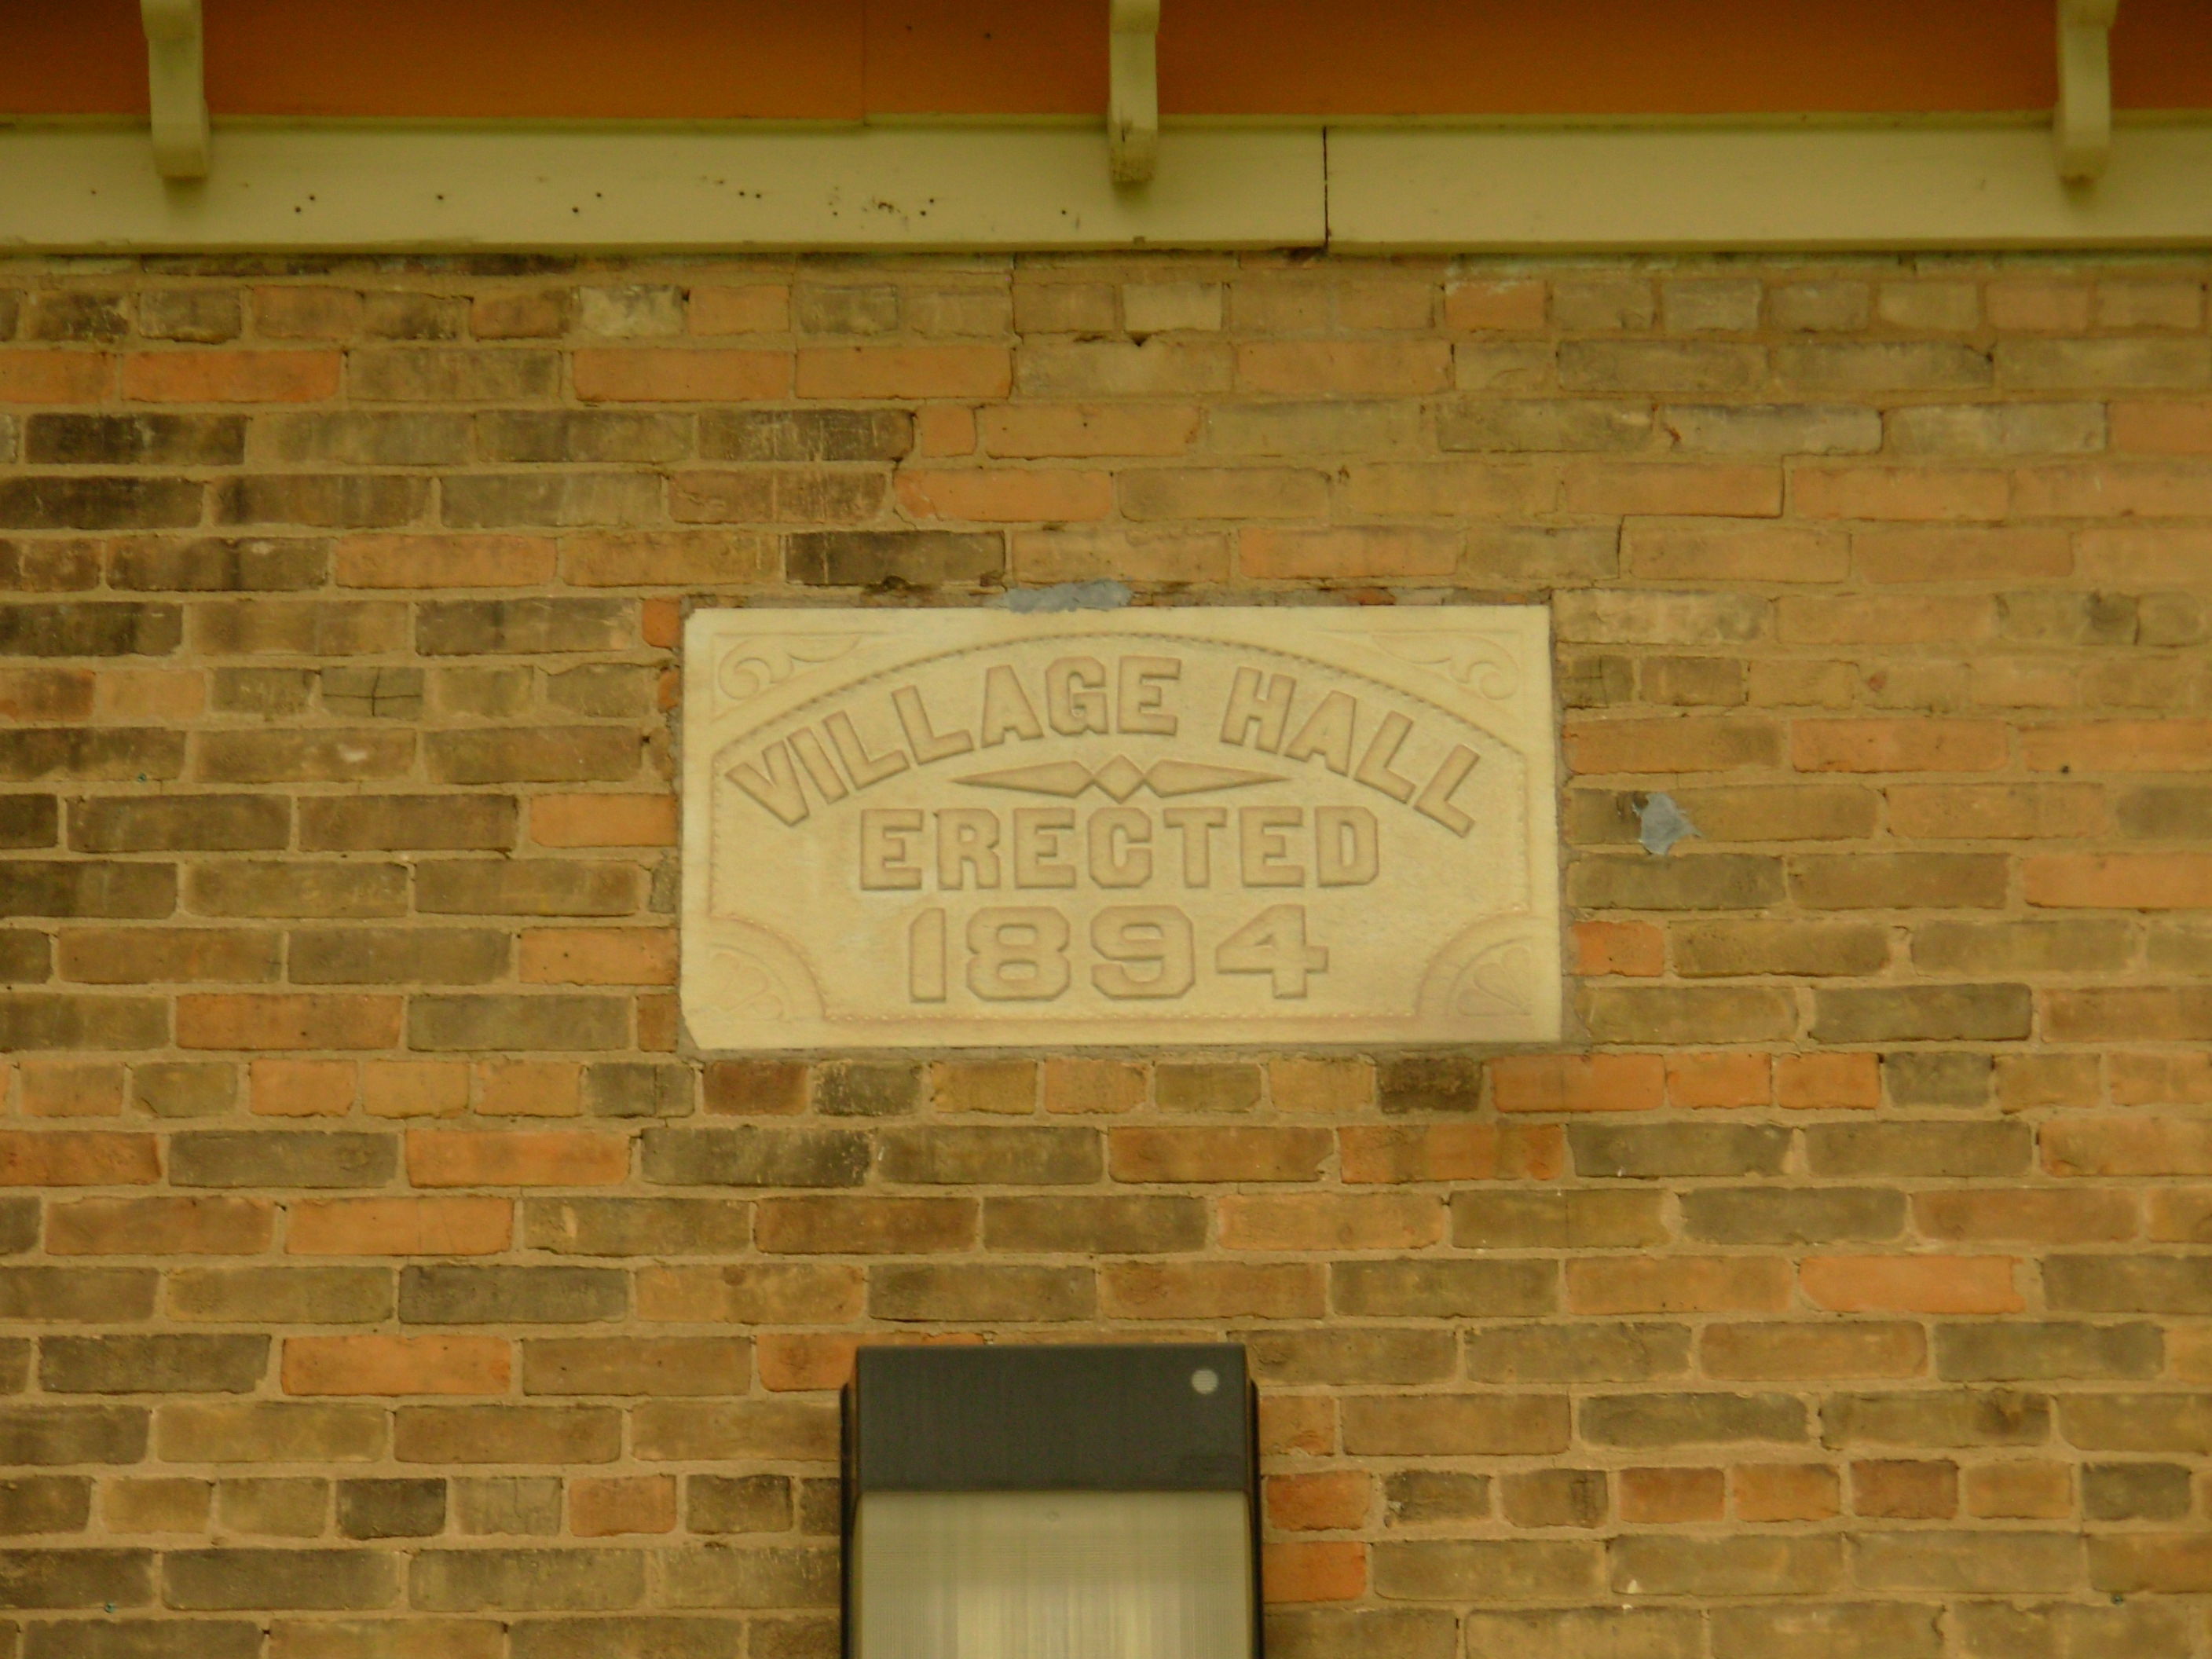 Belleville Library and Village Hall date stone